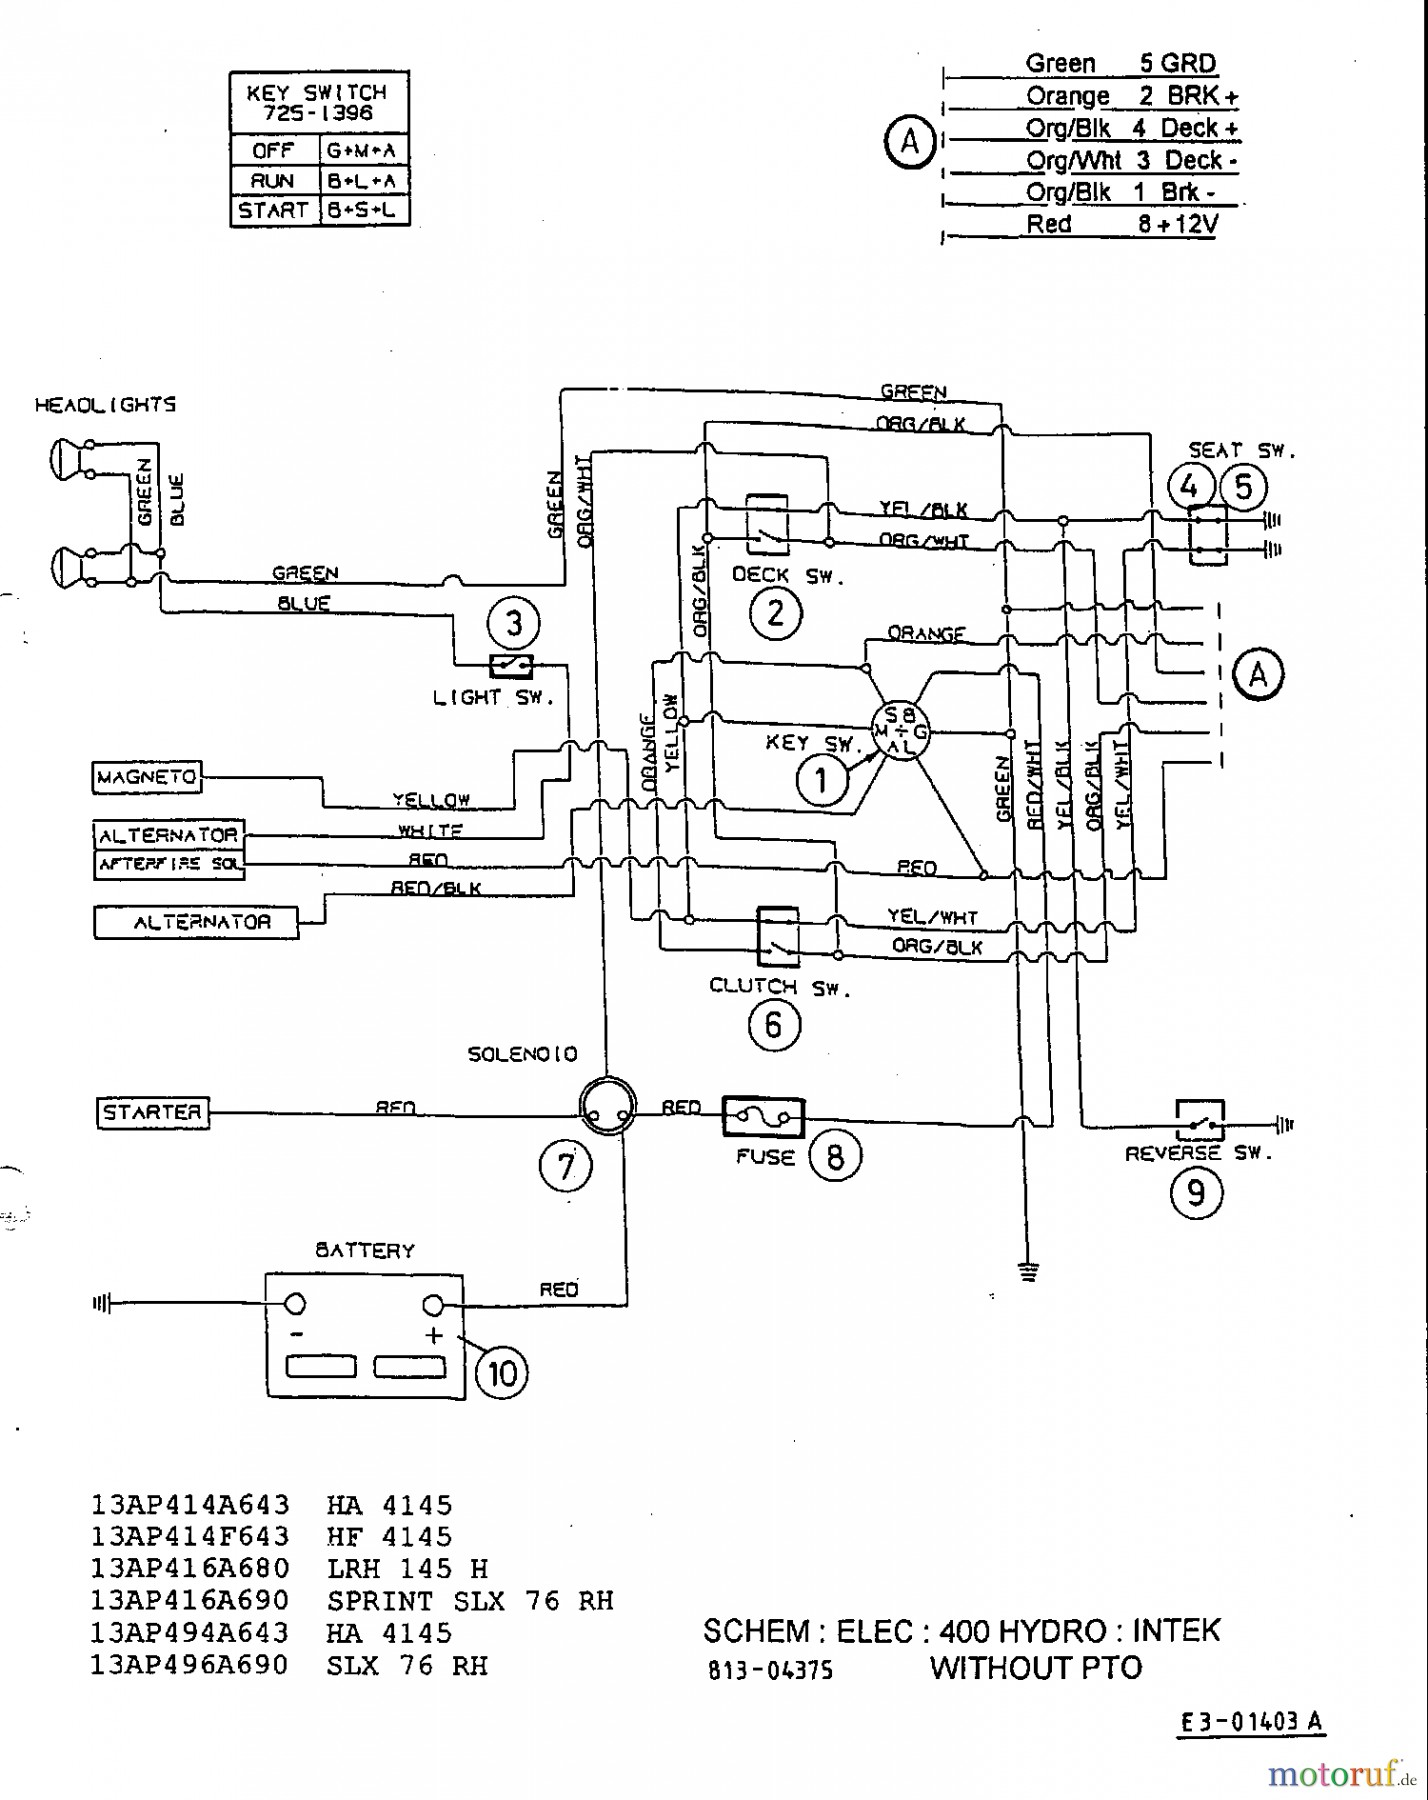 Wiring Diagram for A Craftsman Riding Mower Mtd Riding Mower Wiring Diagram with Yard Machine Of Wiring Diagram for A Craftsman Riding Mower